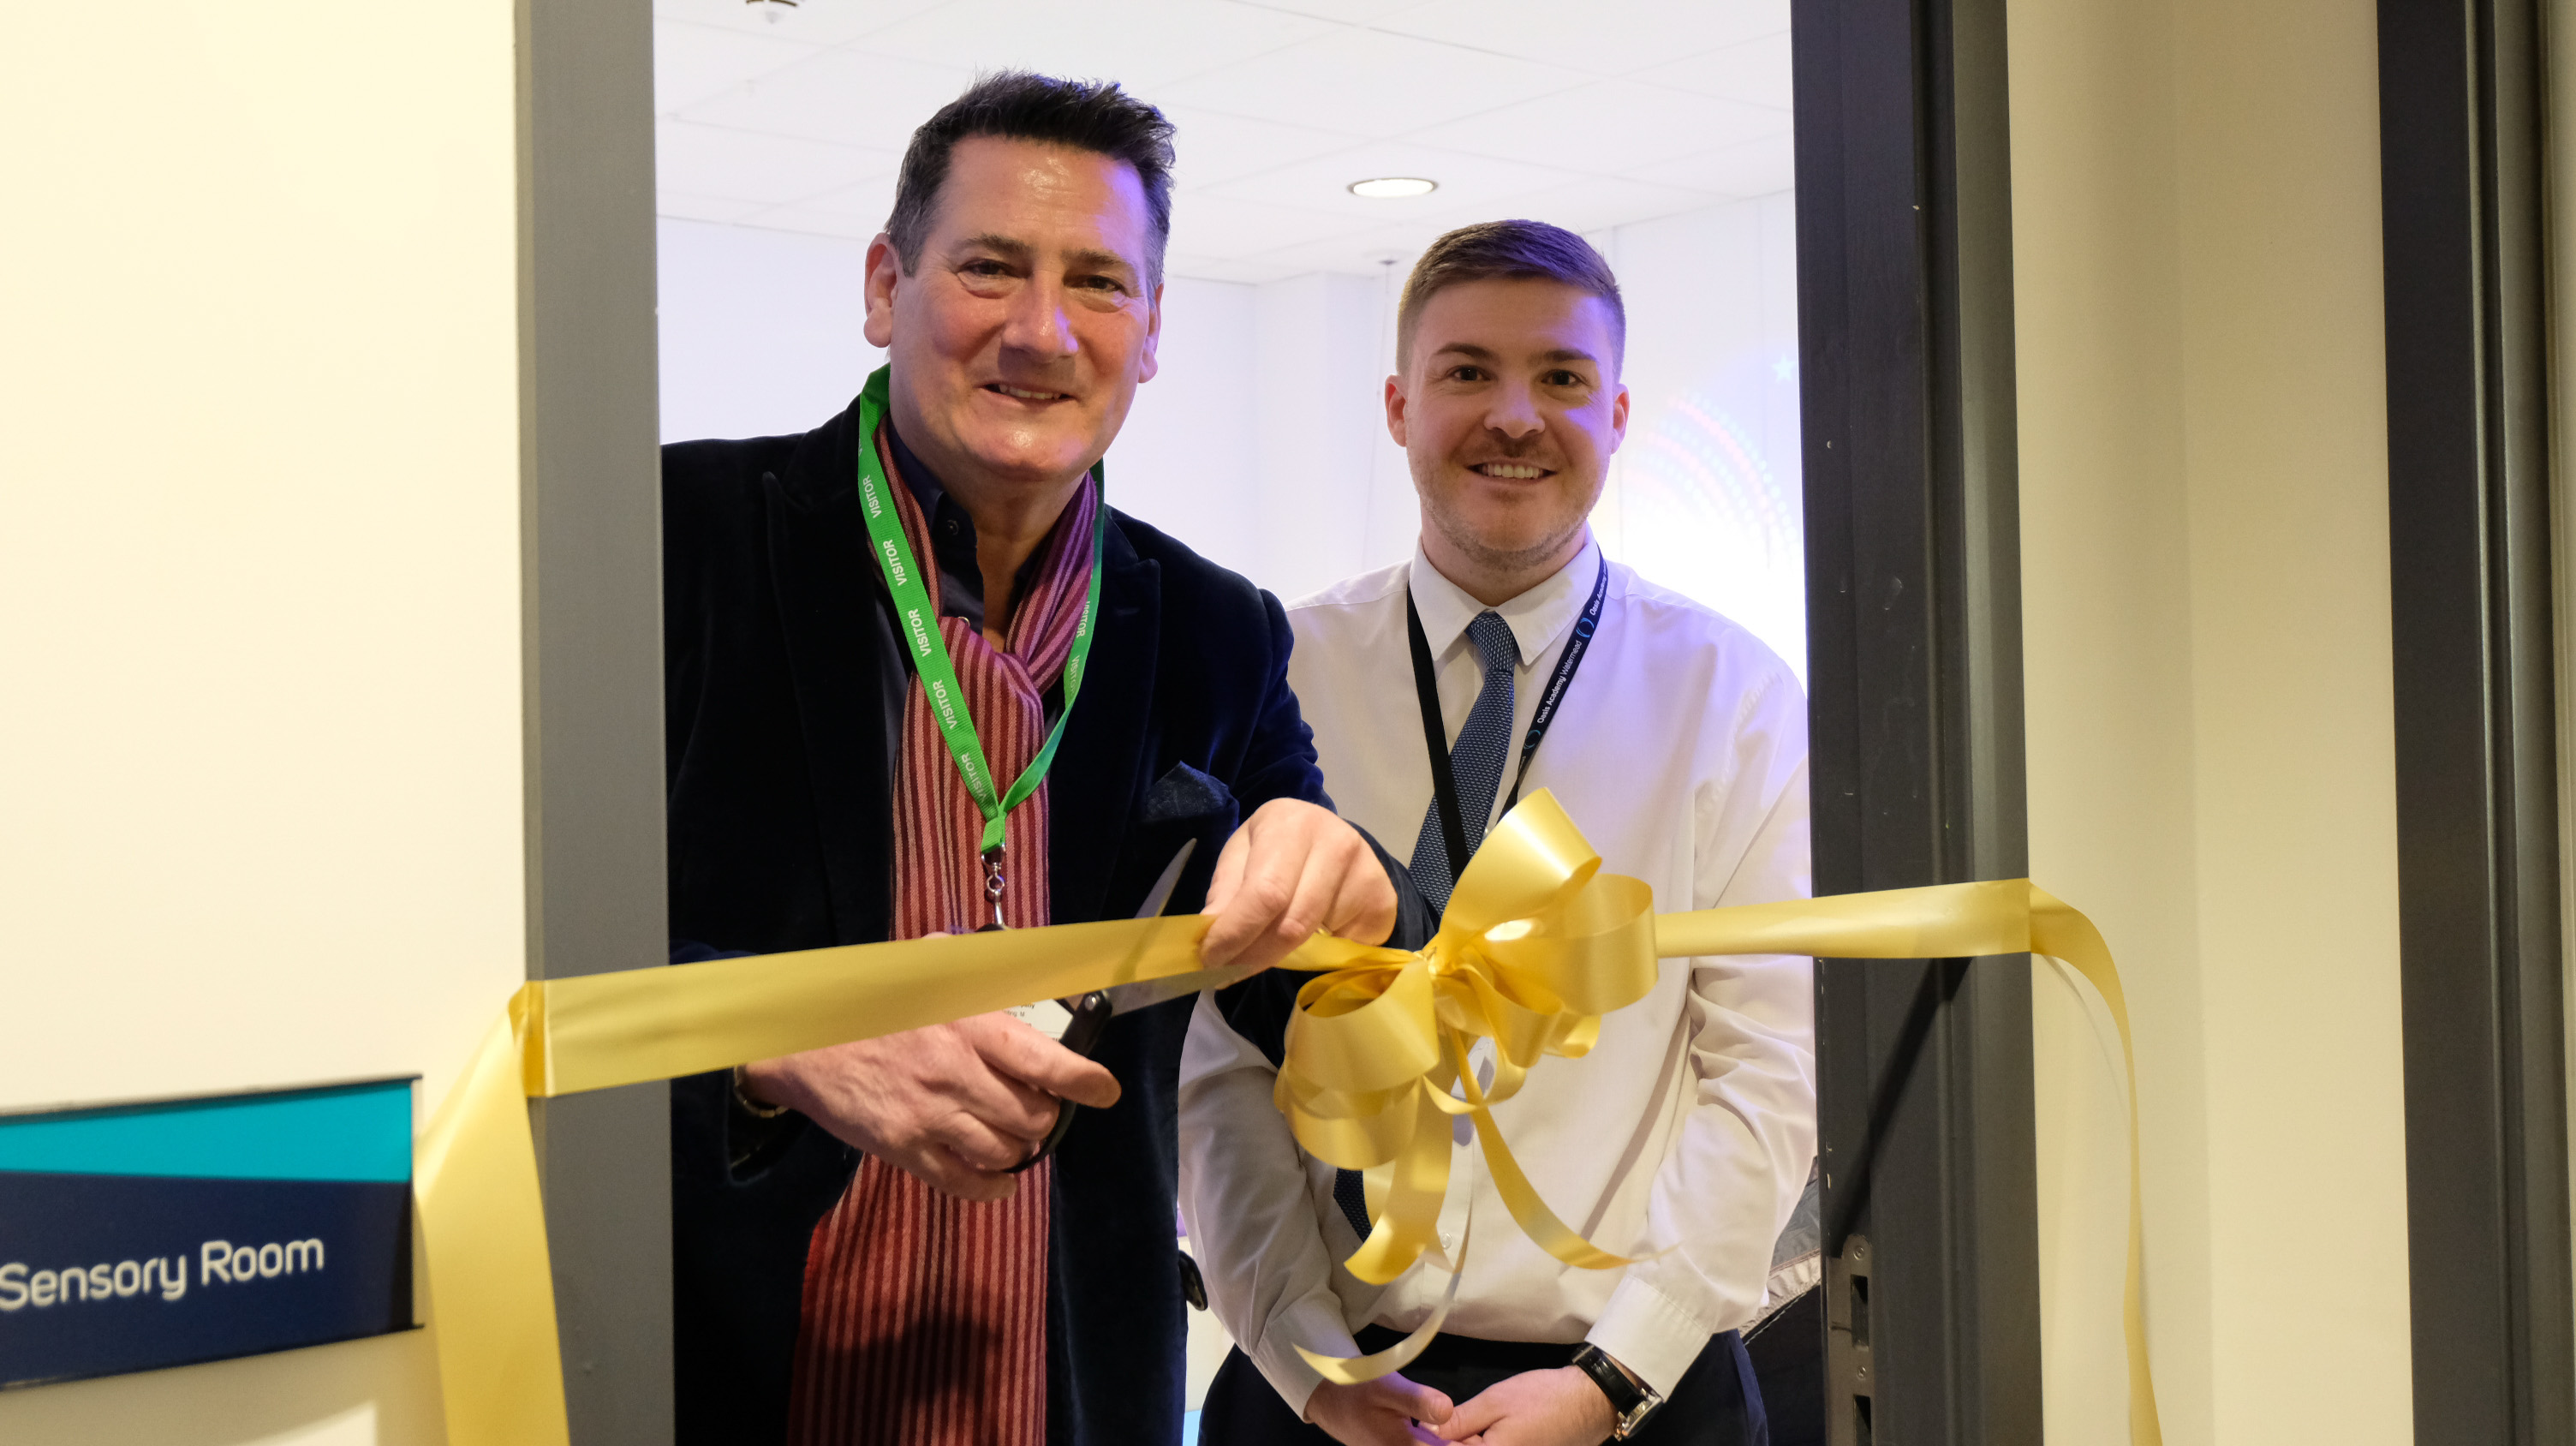 Former Spandau Ballet singer opens new learning space at Oasis Academy Watermead